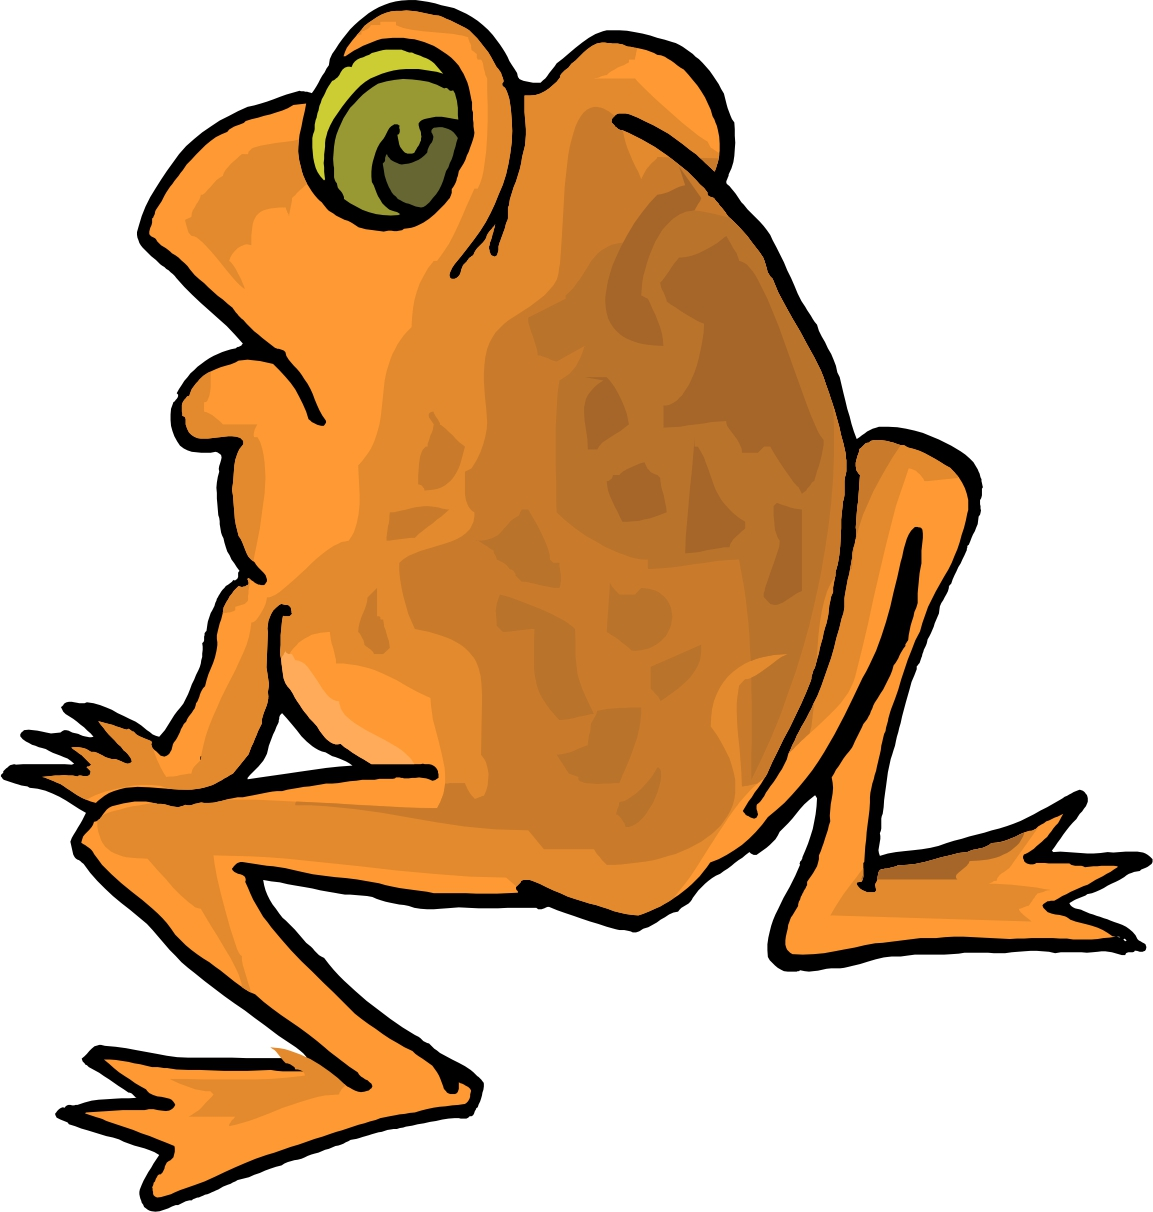 Toad cartoon images